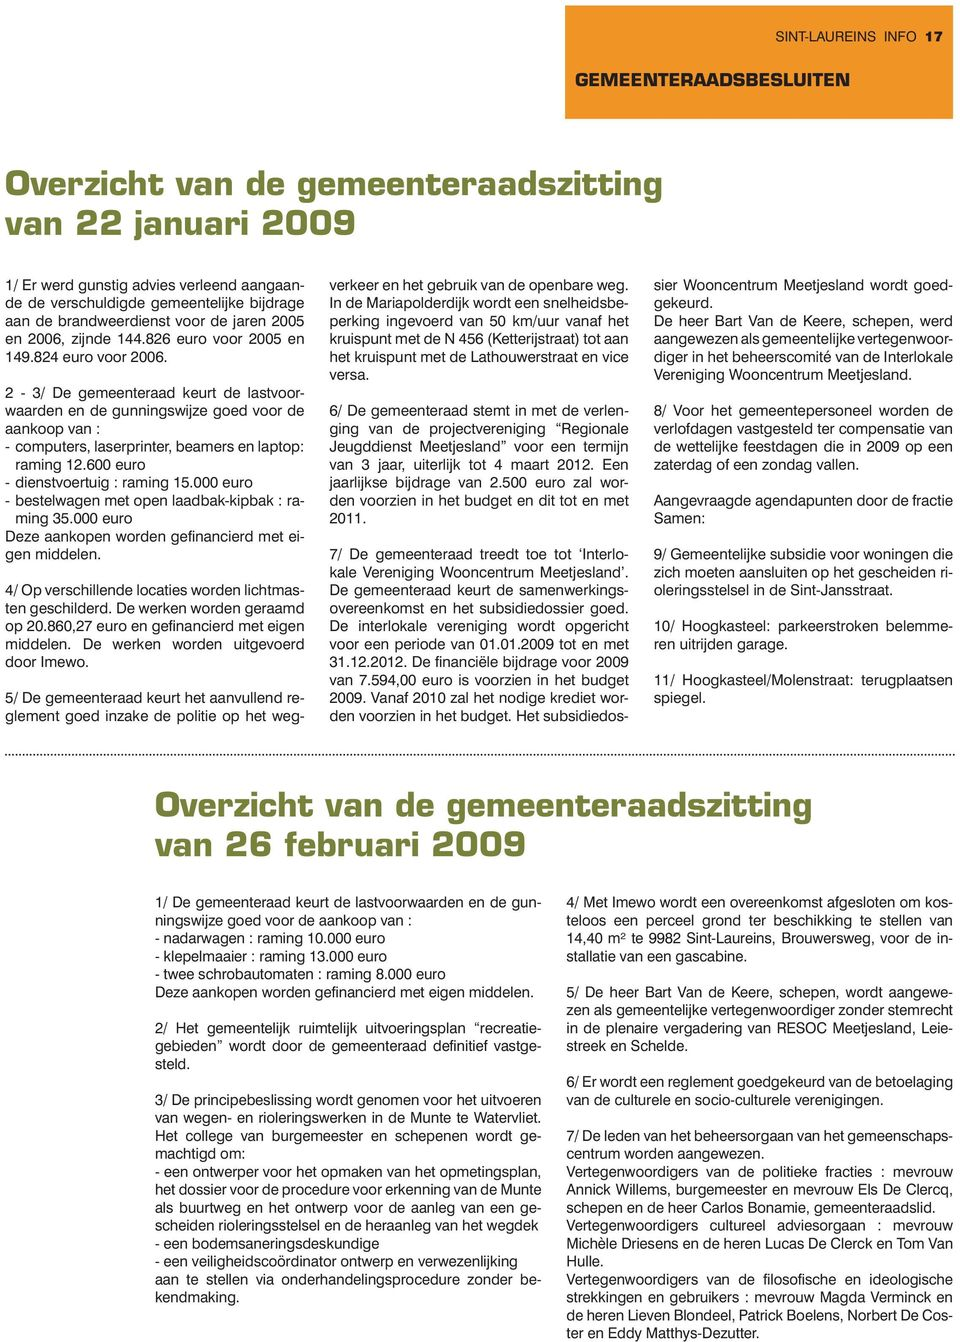 2-3/ De gemeenteraad keurt de lastvoorwaarden en de gunningswijze goed voor de aankoop van : - computers, laserprinter, beamers en laptop: raming 12.600 euro - dienstvoertuig : raming 15.